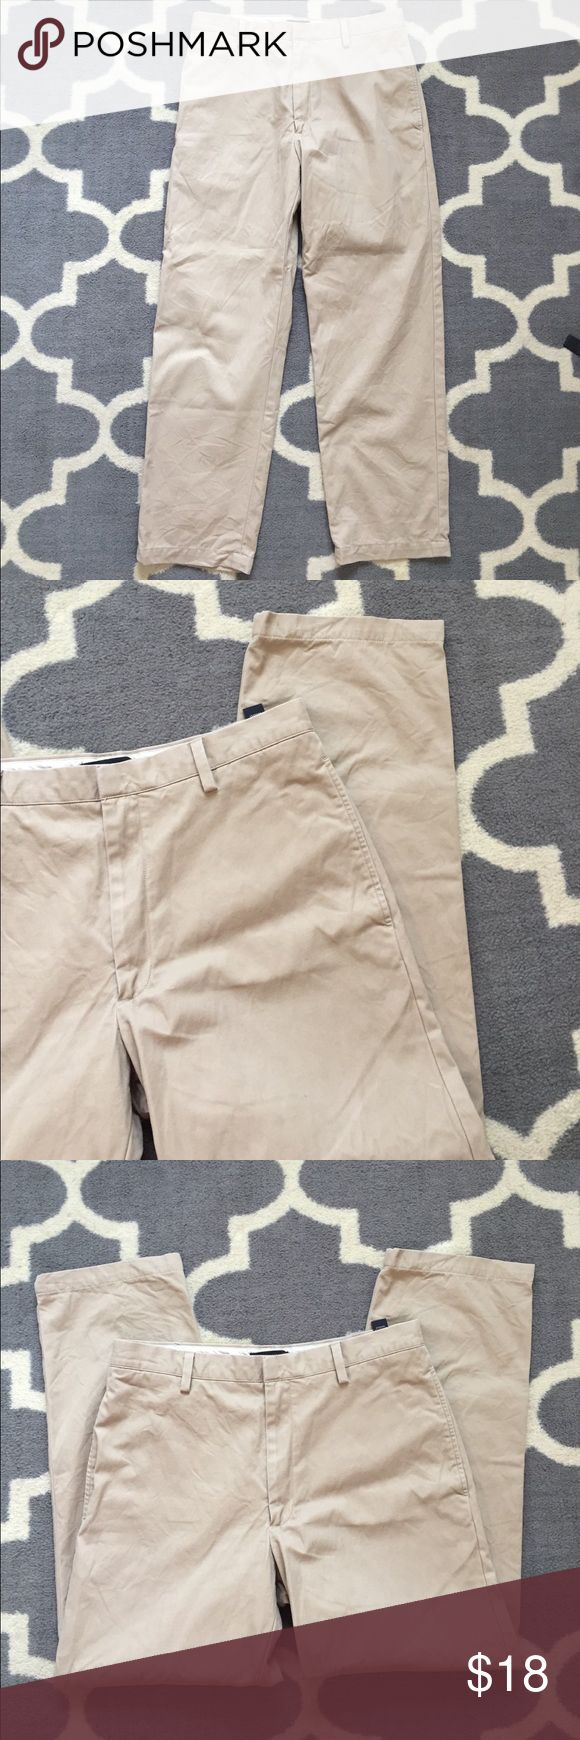 Banana Republic Men's Khaki Pants Cotton 34x30 Men's khaki chino pants from Banana Republic in Straight Fit Gavin style - men's size 34x30. Single clasp and zip front closure with belt loops, side and rear pockets. Banana Republic Pants Chinos & Khakis